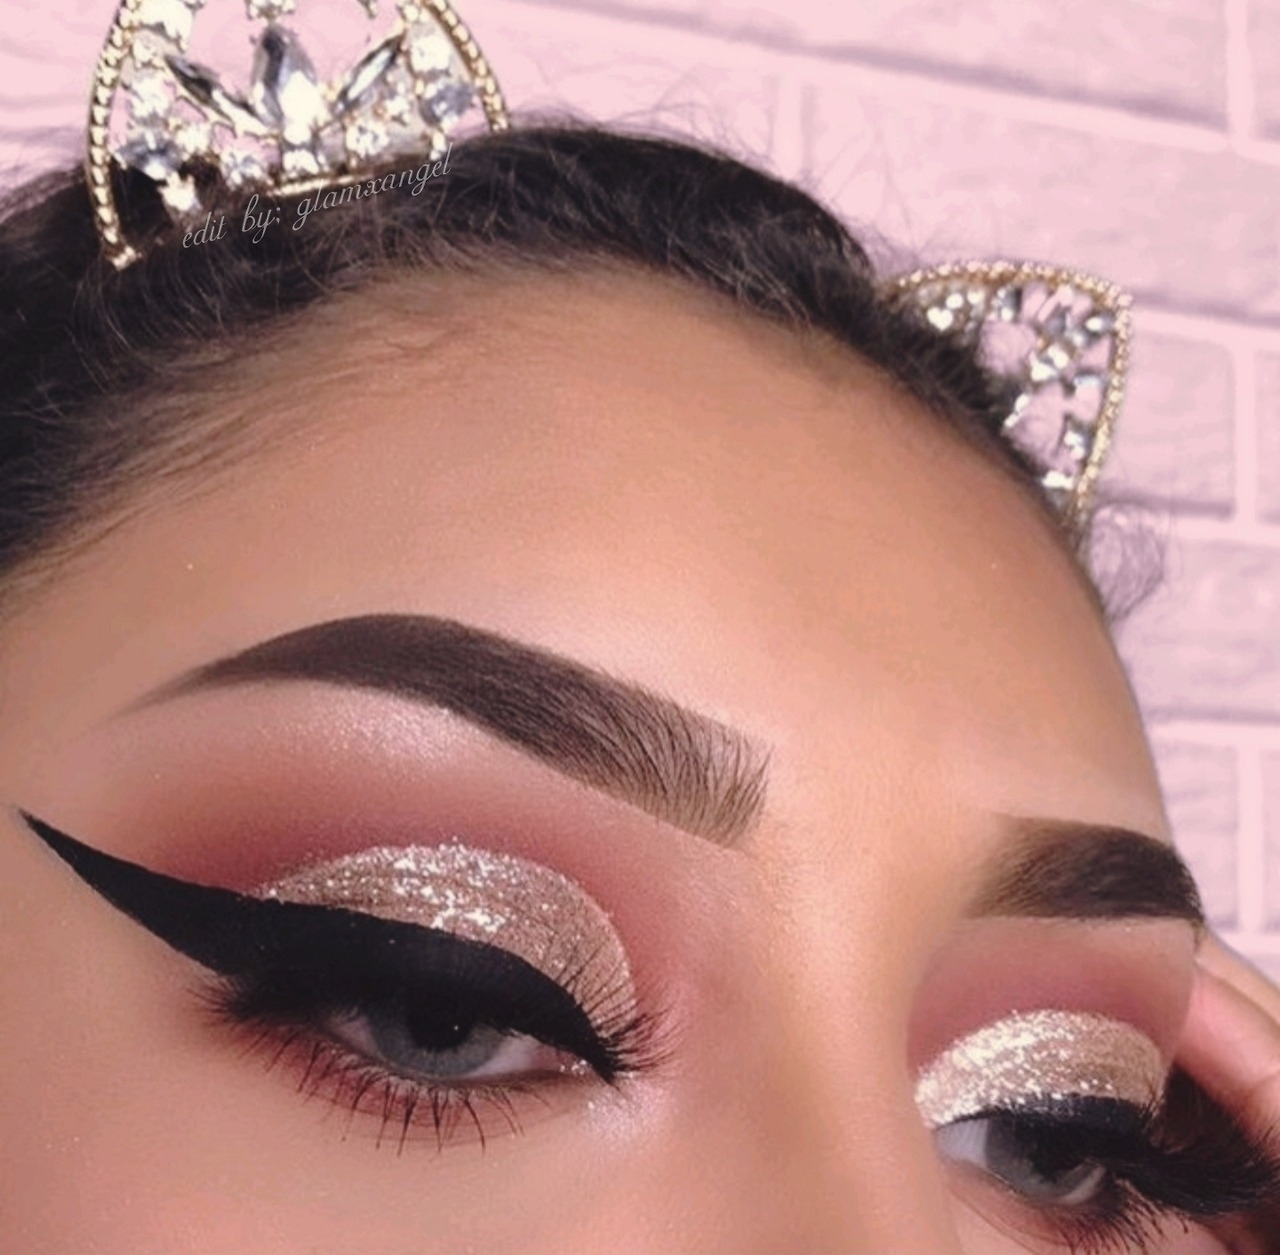 Eye Lash Goals   Tumblr intended for Cute Makeup Ideas For Brown Eyes Tumblr